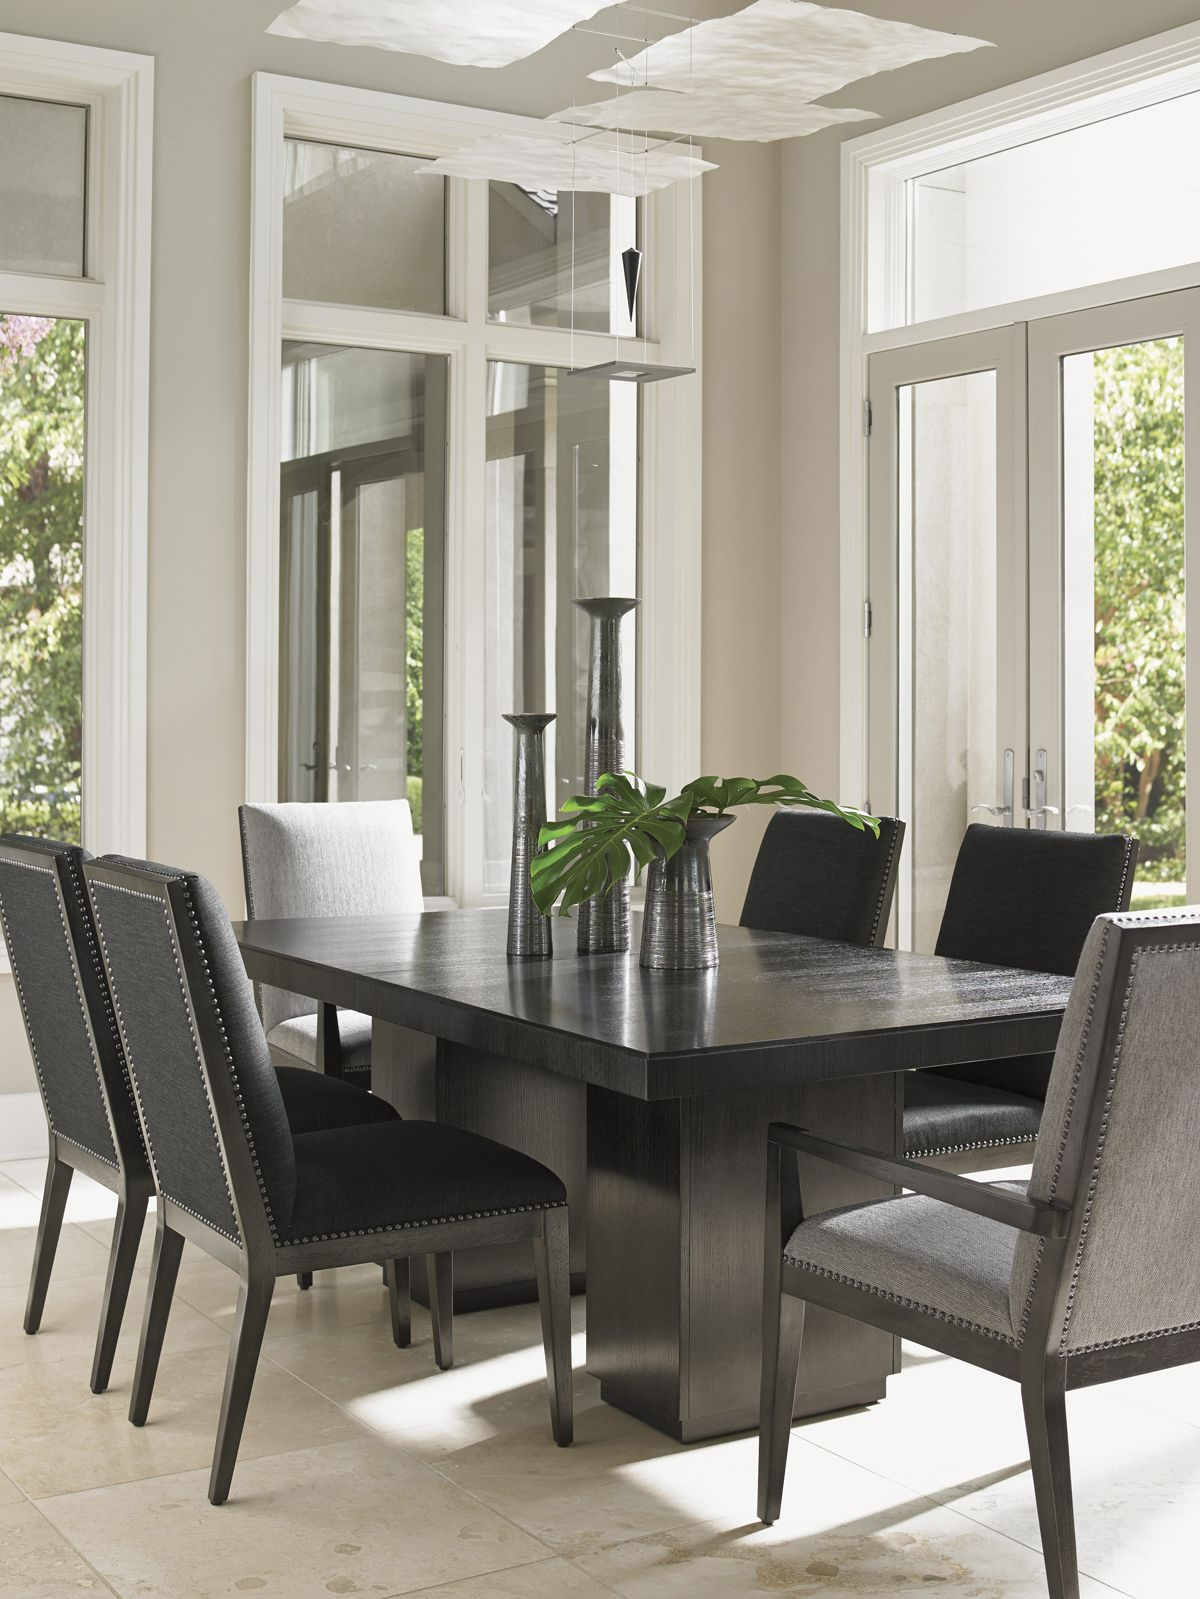 Carrera Vantage Upholstered Side Chair Lexington Home Brands Double Pedestal Dining Table Extendable Dining Table Pedestal Dining Table